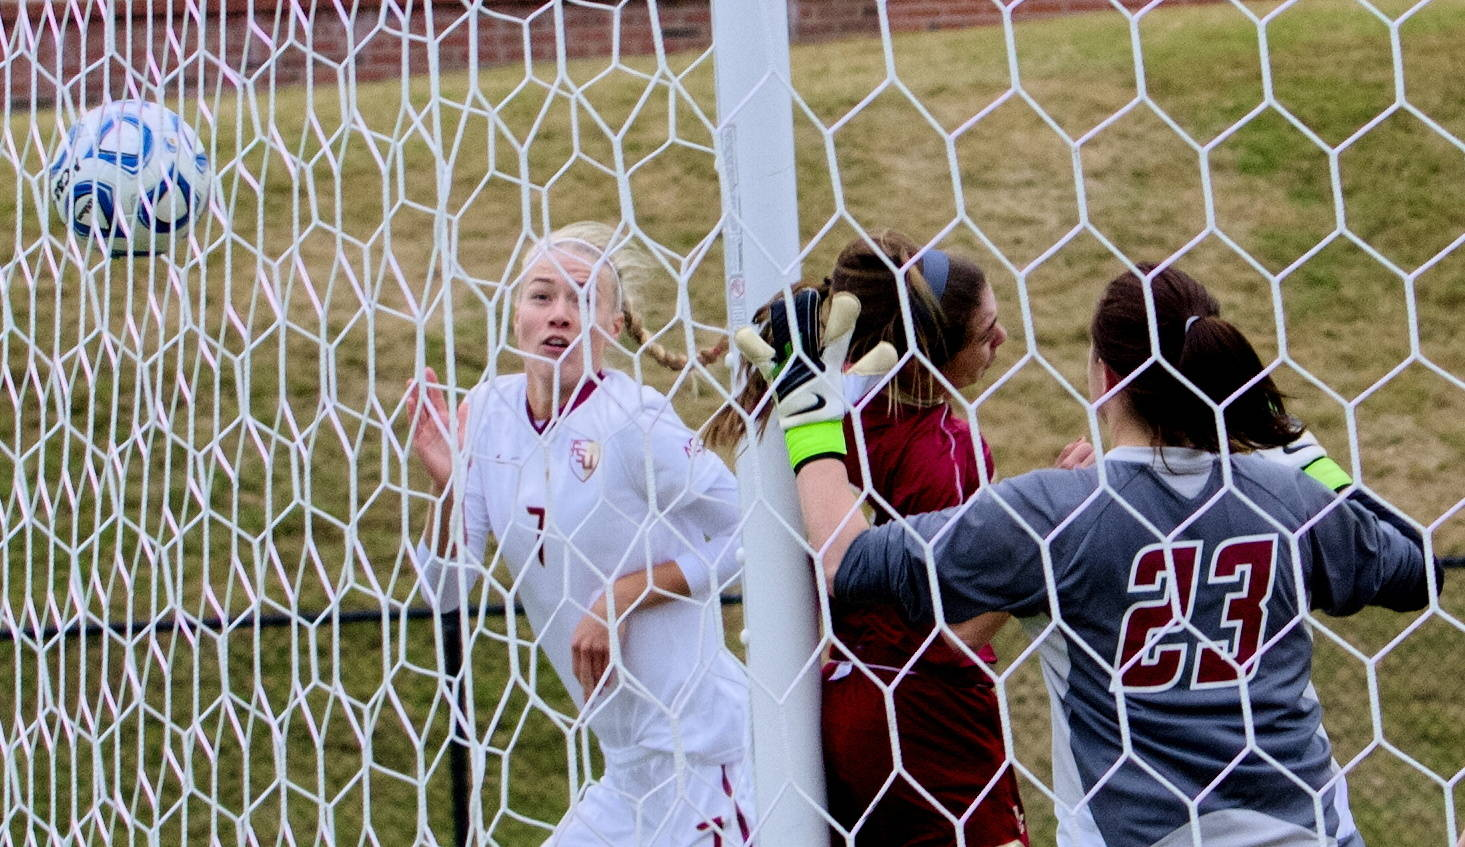 Dagny Brynjarsdottir watches her header go into the net for a goal, FSU vs BC, ACC Tournament, 10/28/12. (Photo by Steve Musco)